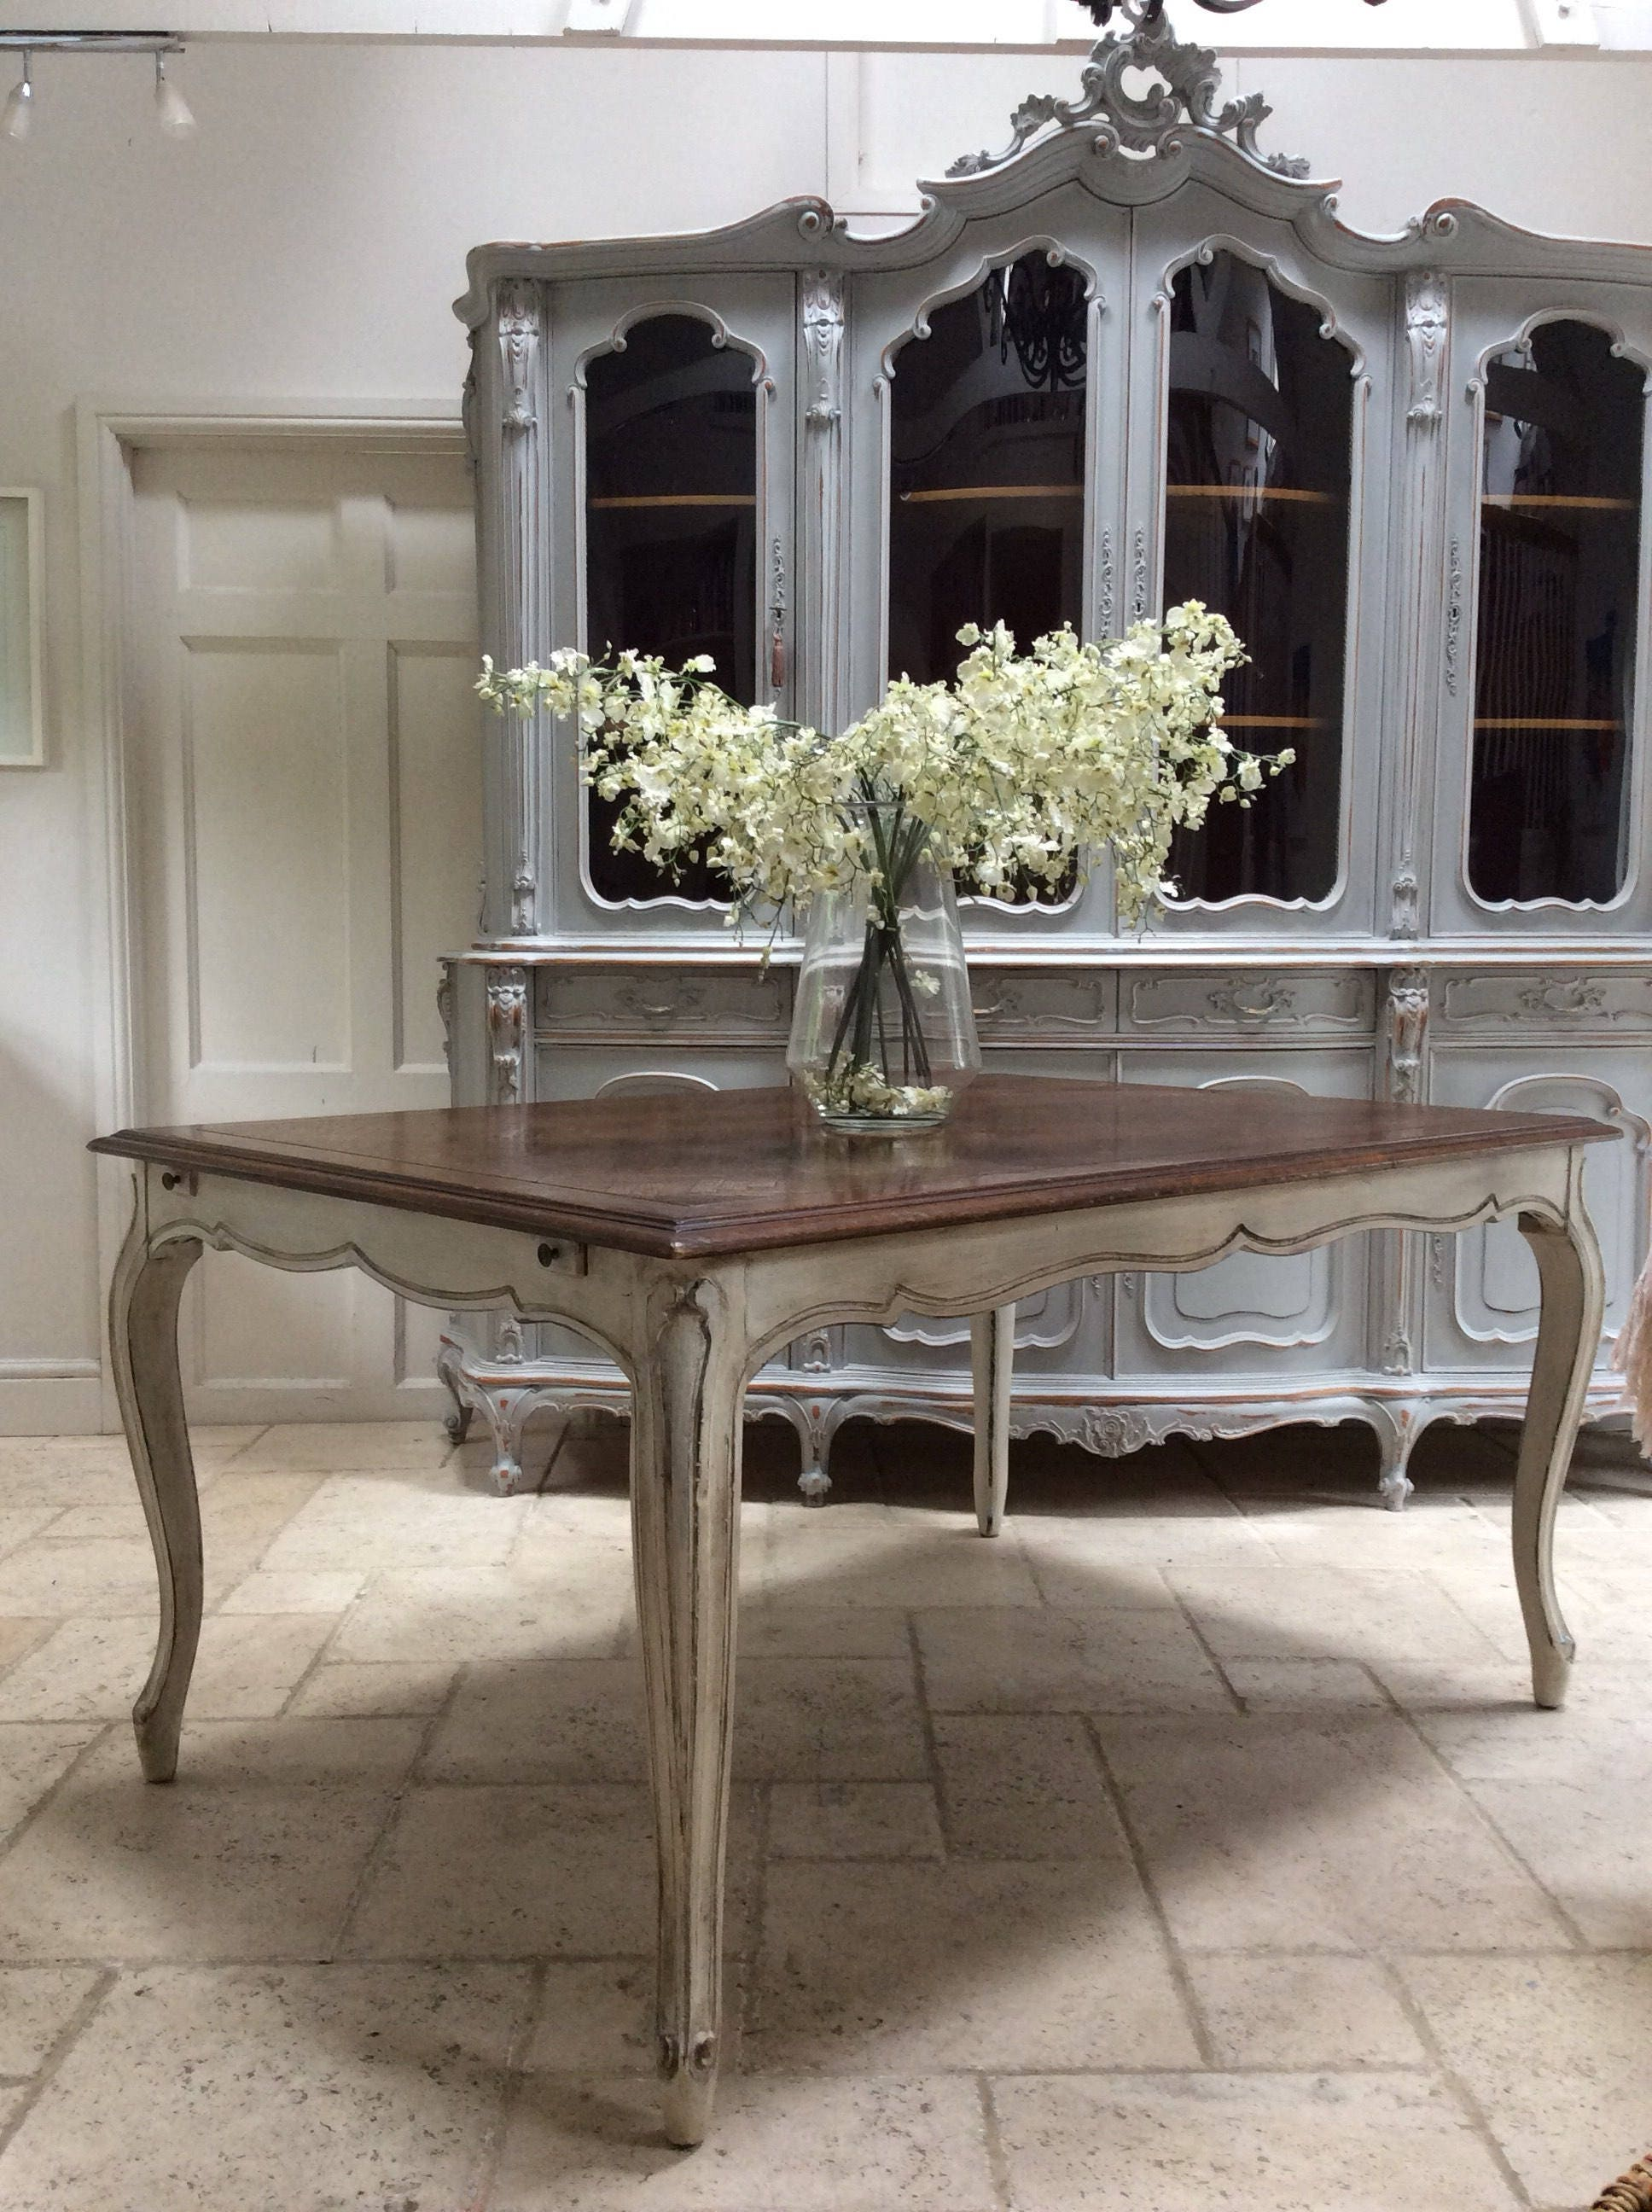 Hand Painted Vintage Wooden French Dining Table 5ft extending to 8ft with two leaves.